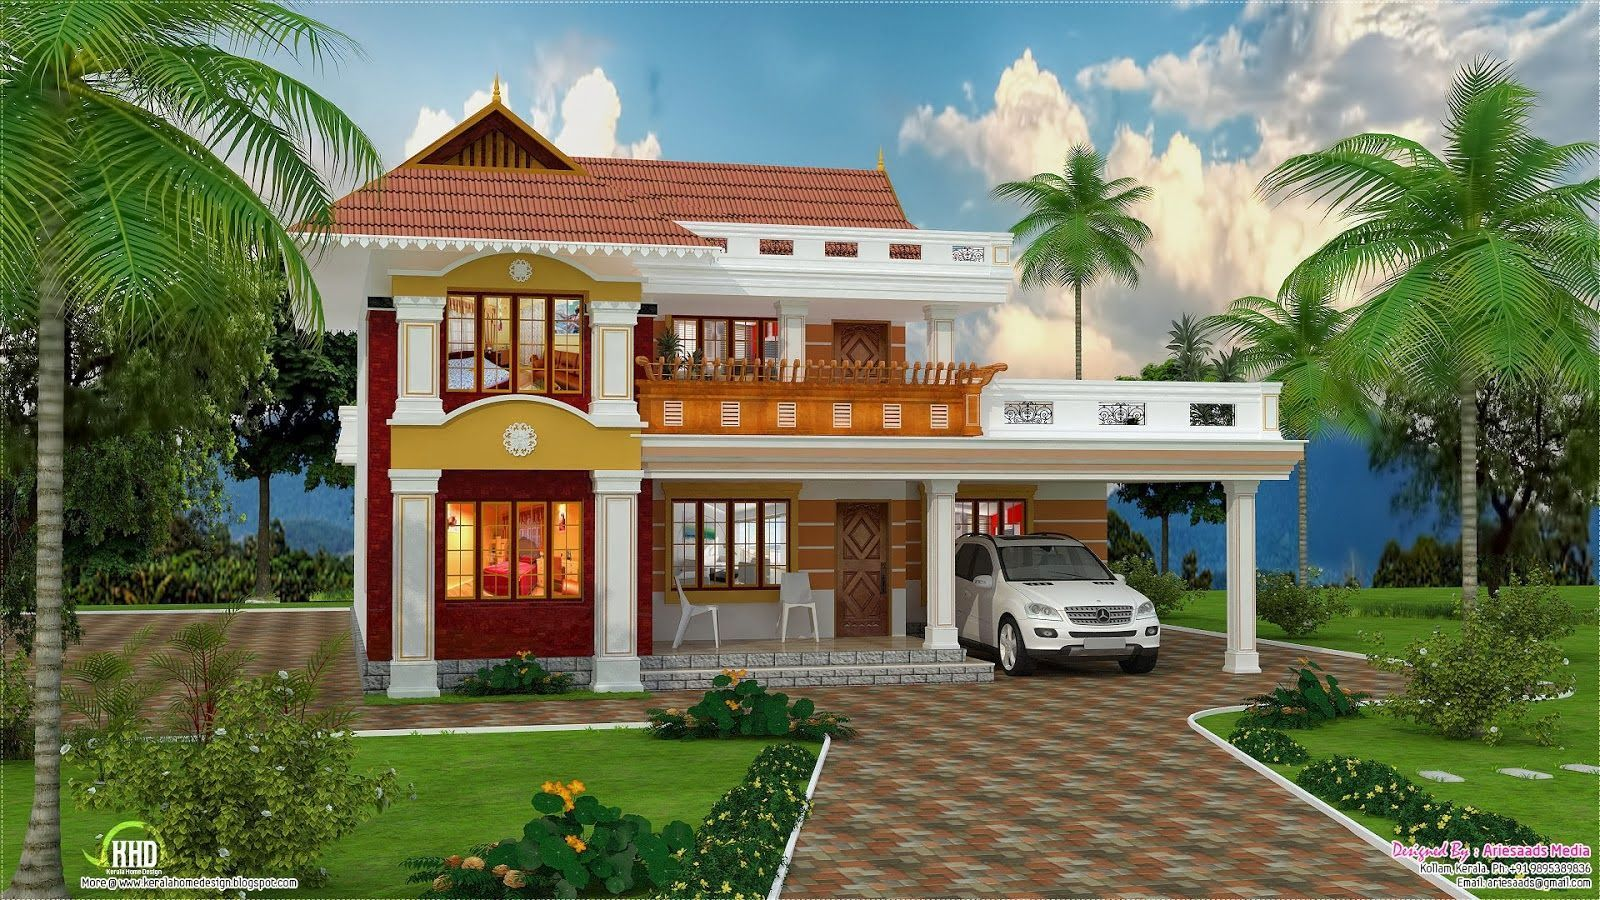 Image Result For Beautiful House Images Download Beautiful Beautyhousesindian Download Beautiful House Images Wallpaper House Design Simple House Design